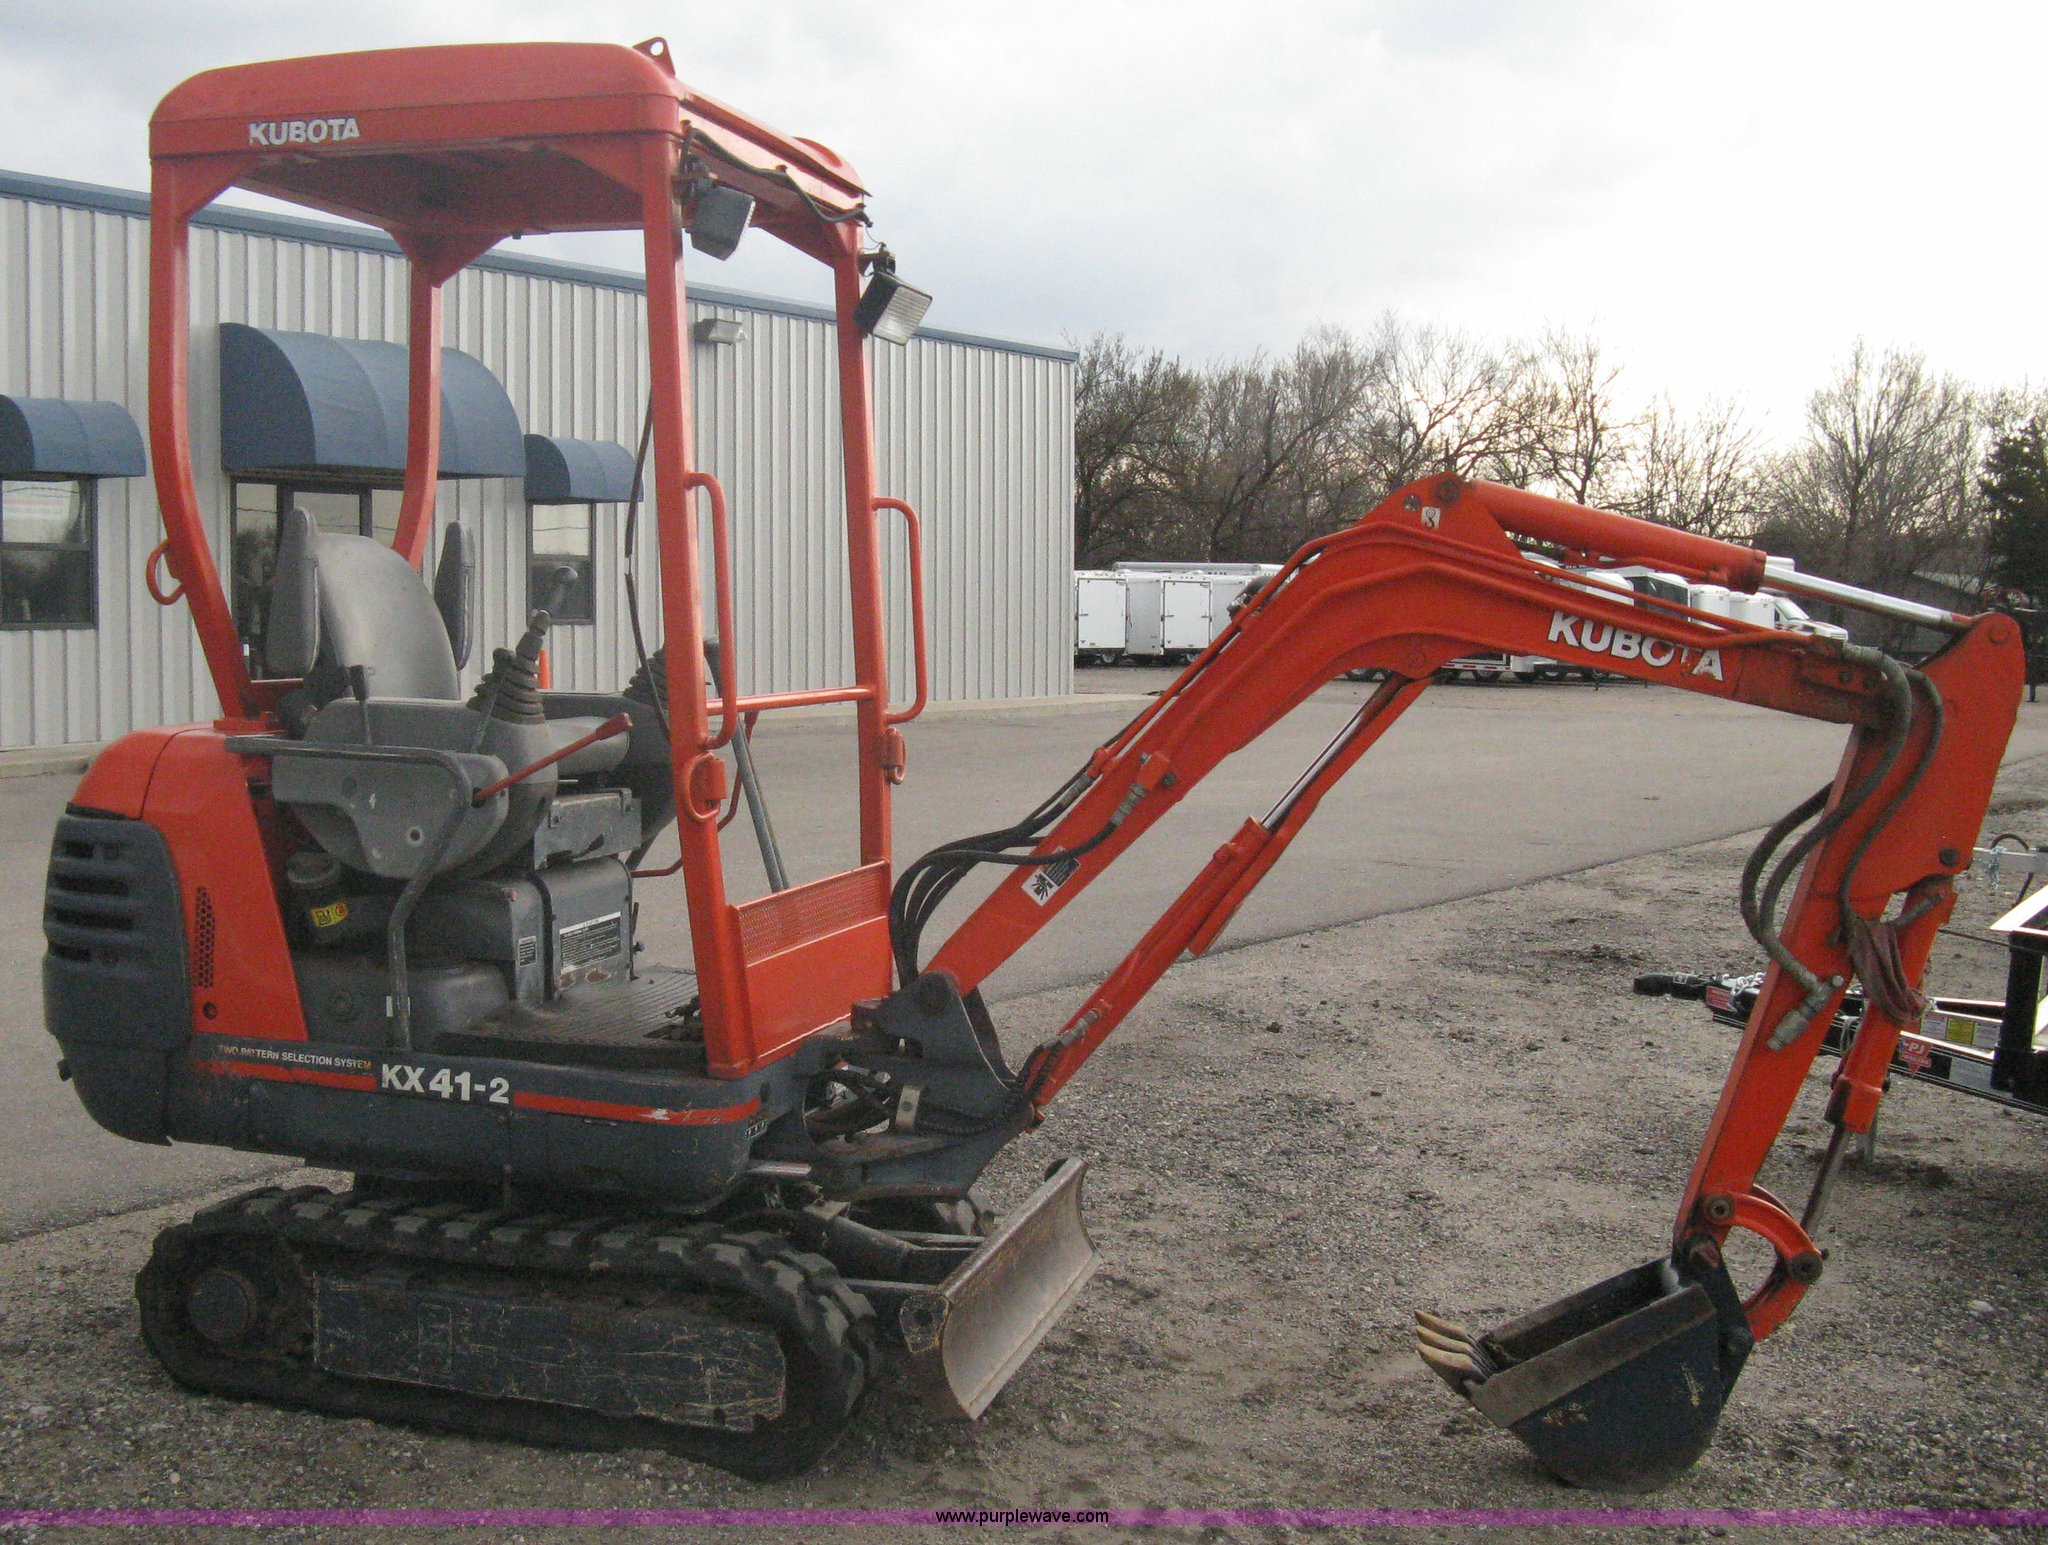 Swell Kubota Kx41 2 Compact Excavator Item A6116 Sold March 2 Wiring Cloud Strefoxcilixyz